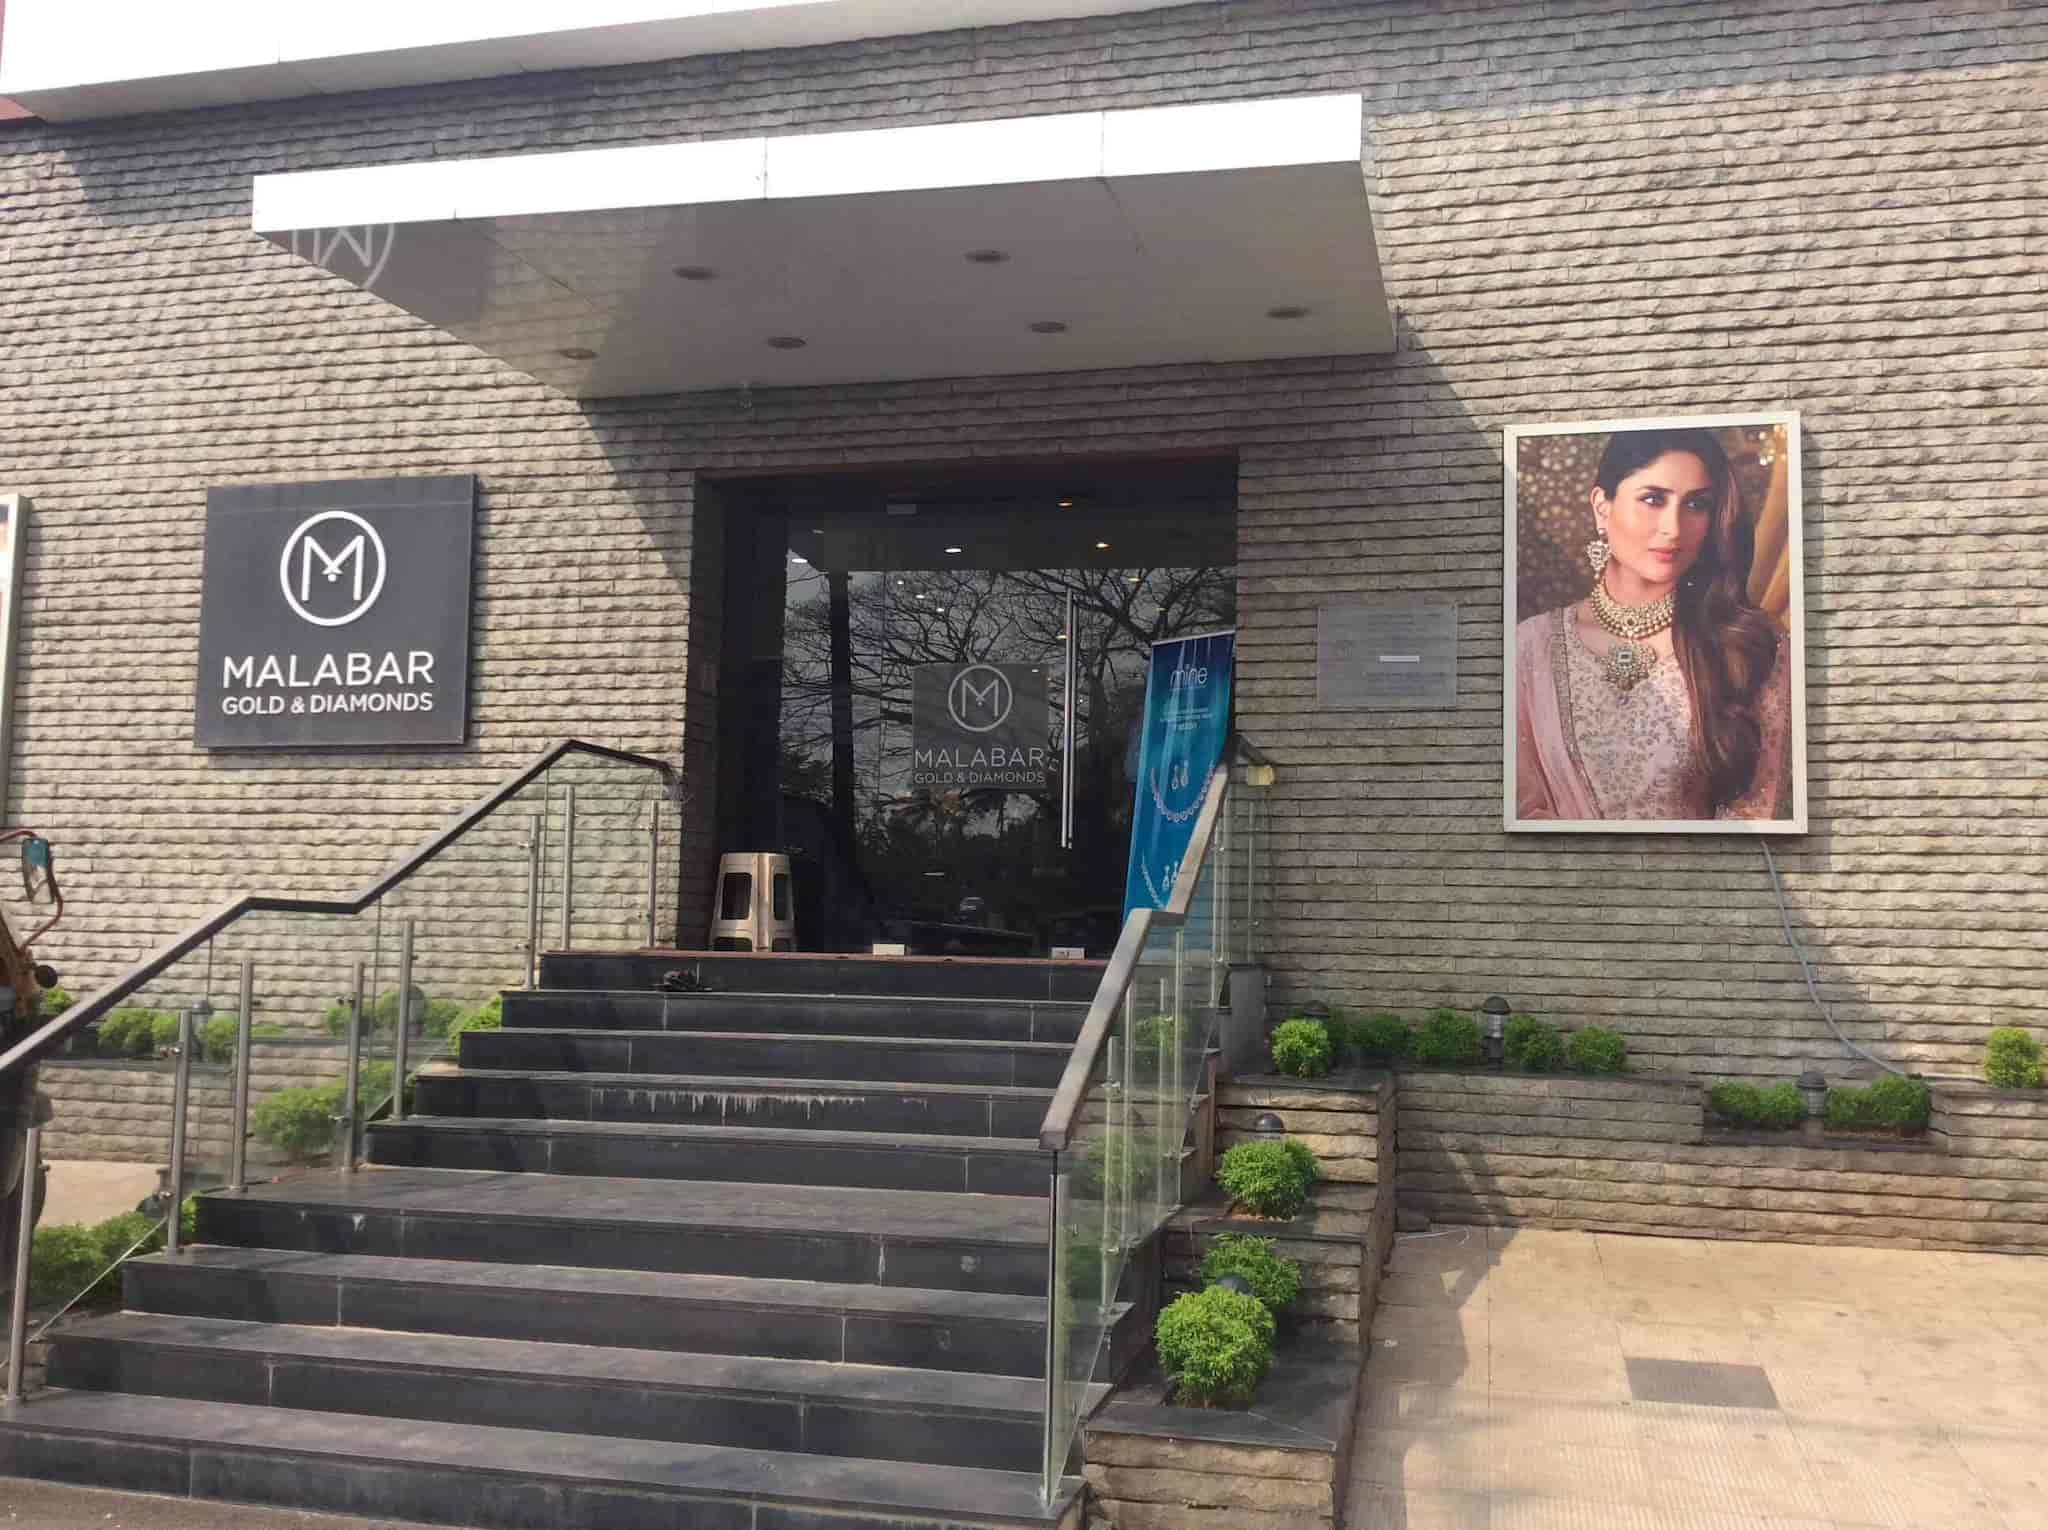 a major diamond malabar retailer million its amounting expansion of diamonds today future gold retail announces news investment in plans plan latest announced jewellery